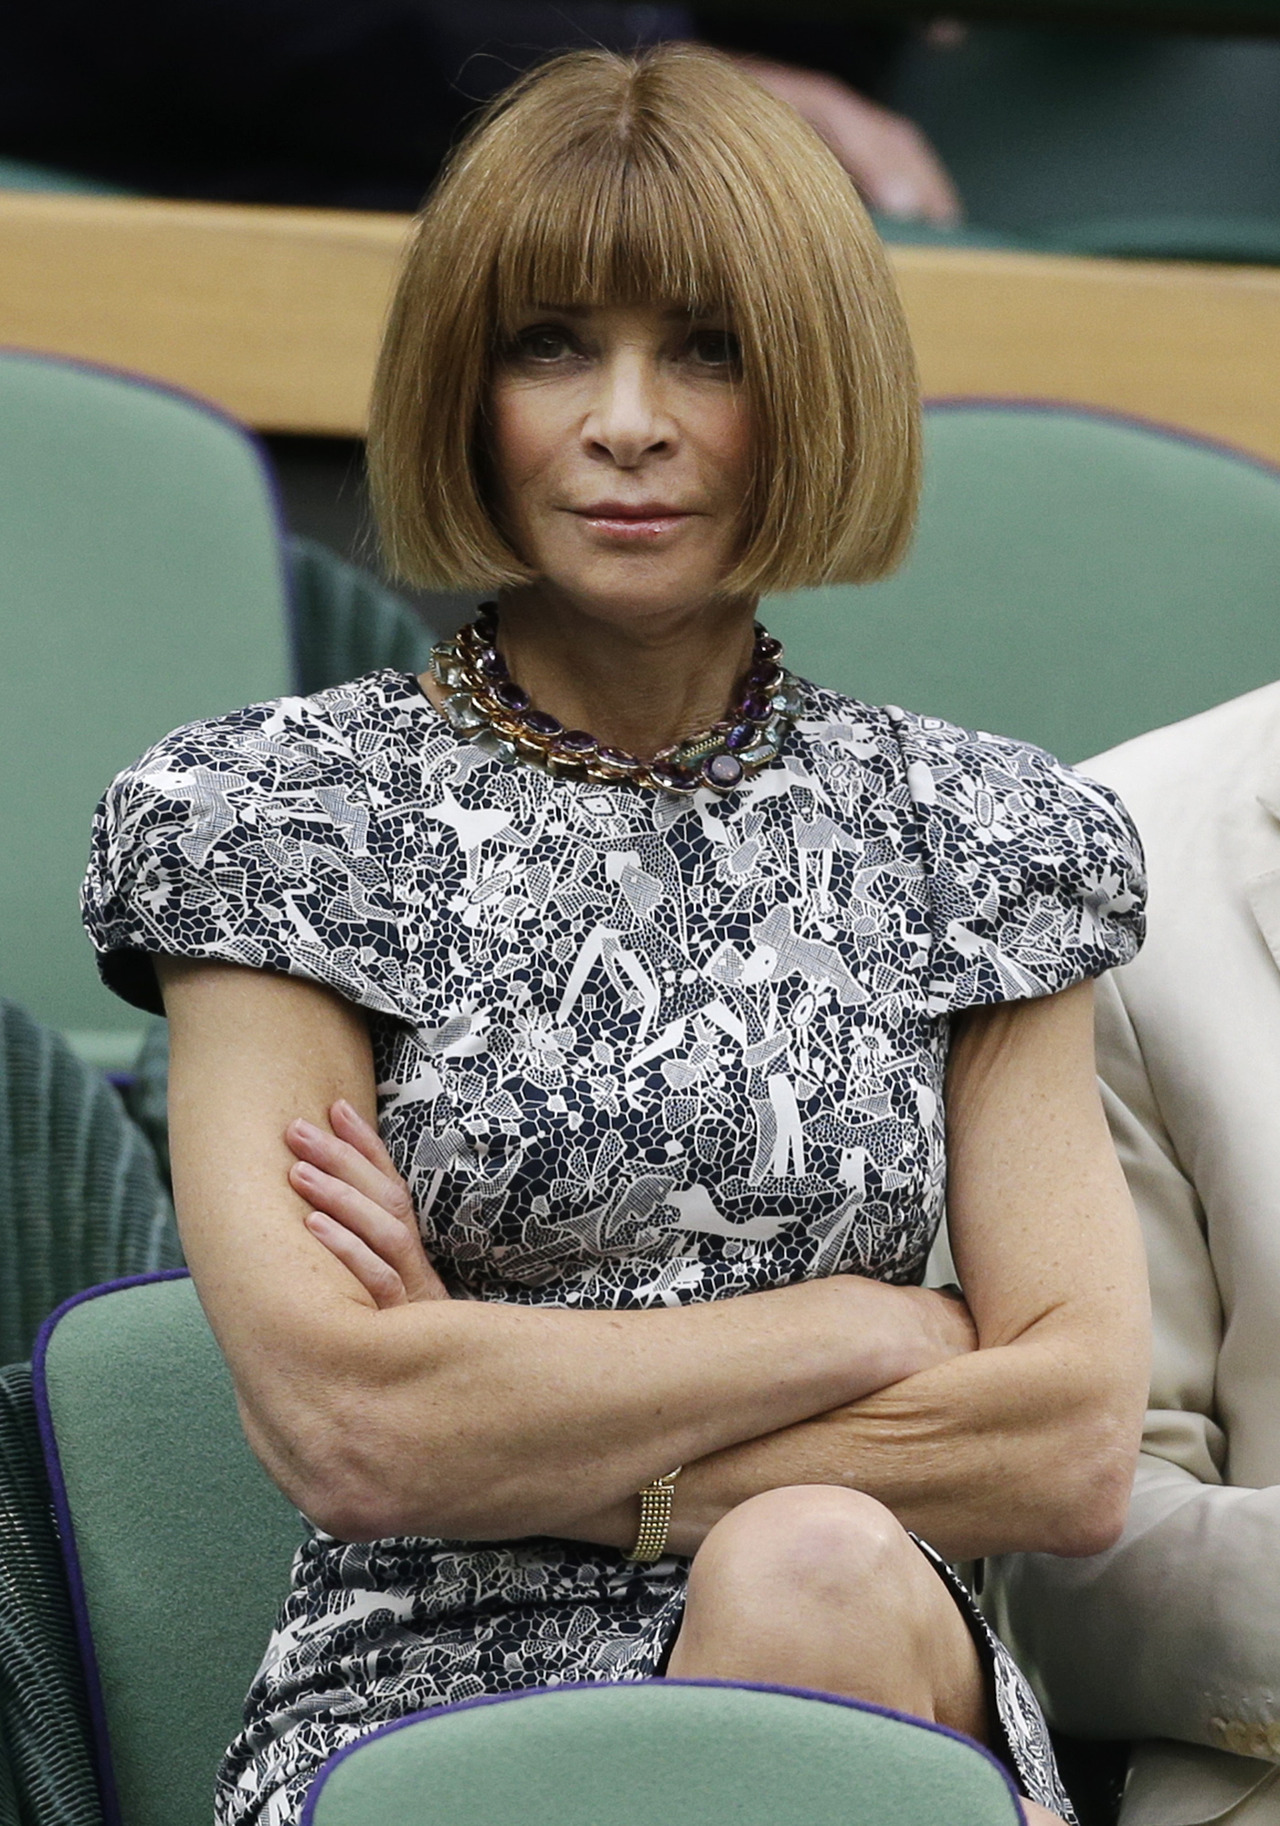 Vogue editor Anna Wintour today at Wimbledon before the Djokovic-Federer match. (AP Photo/Anja Niedringhaus)